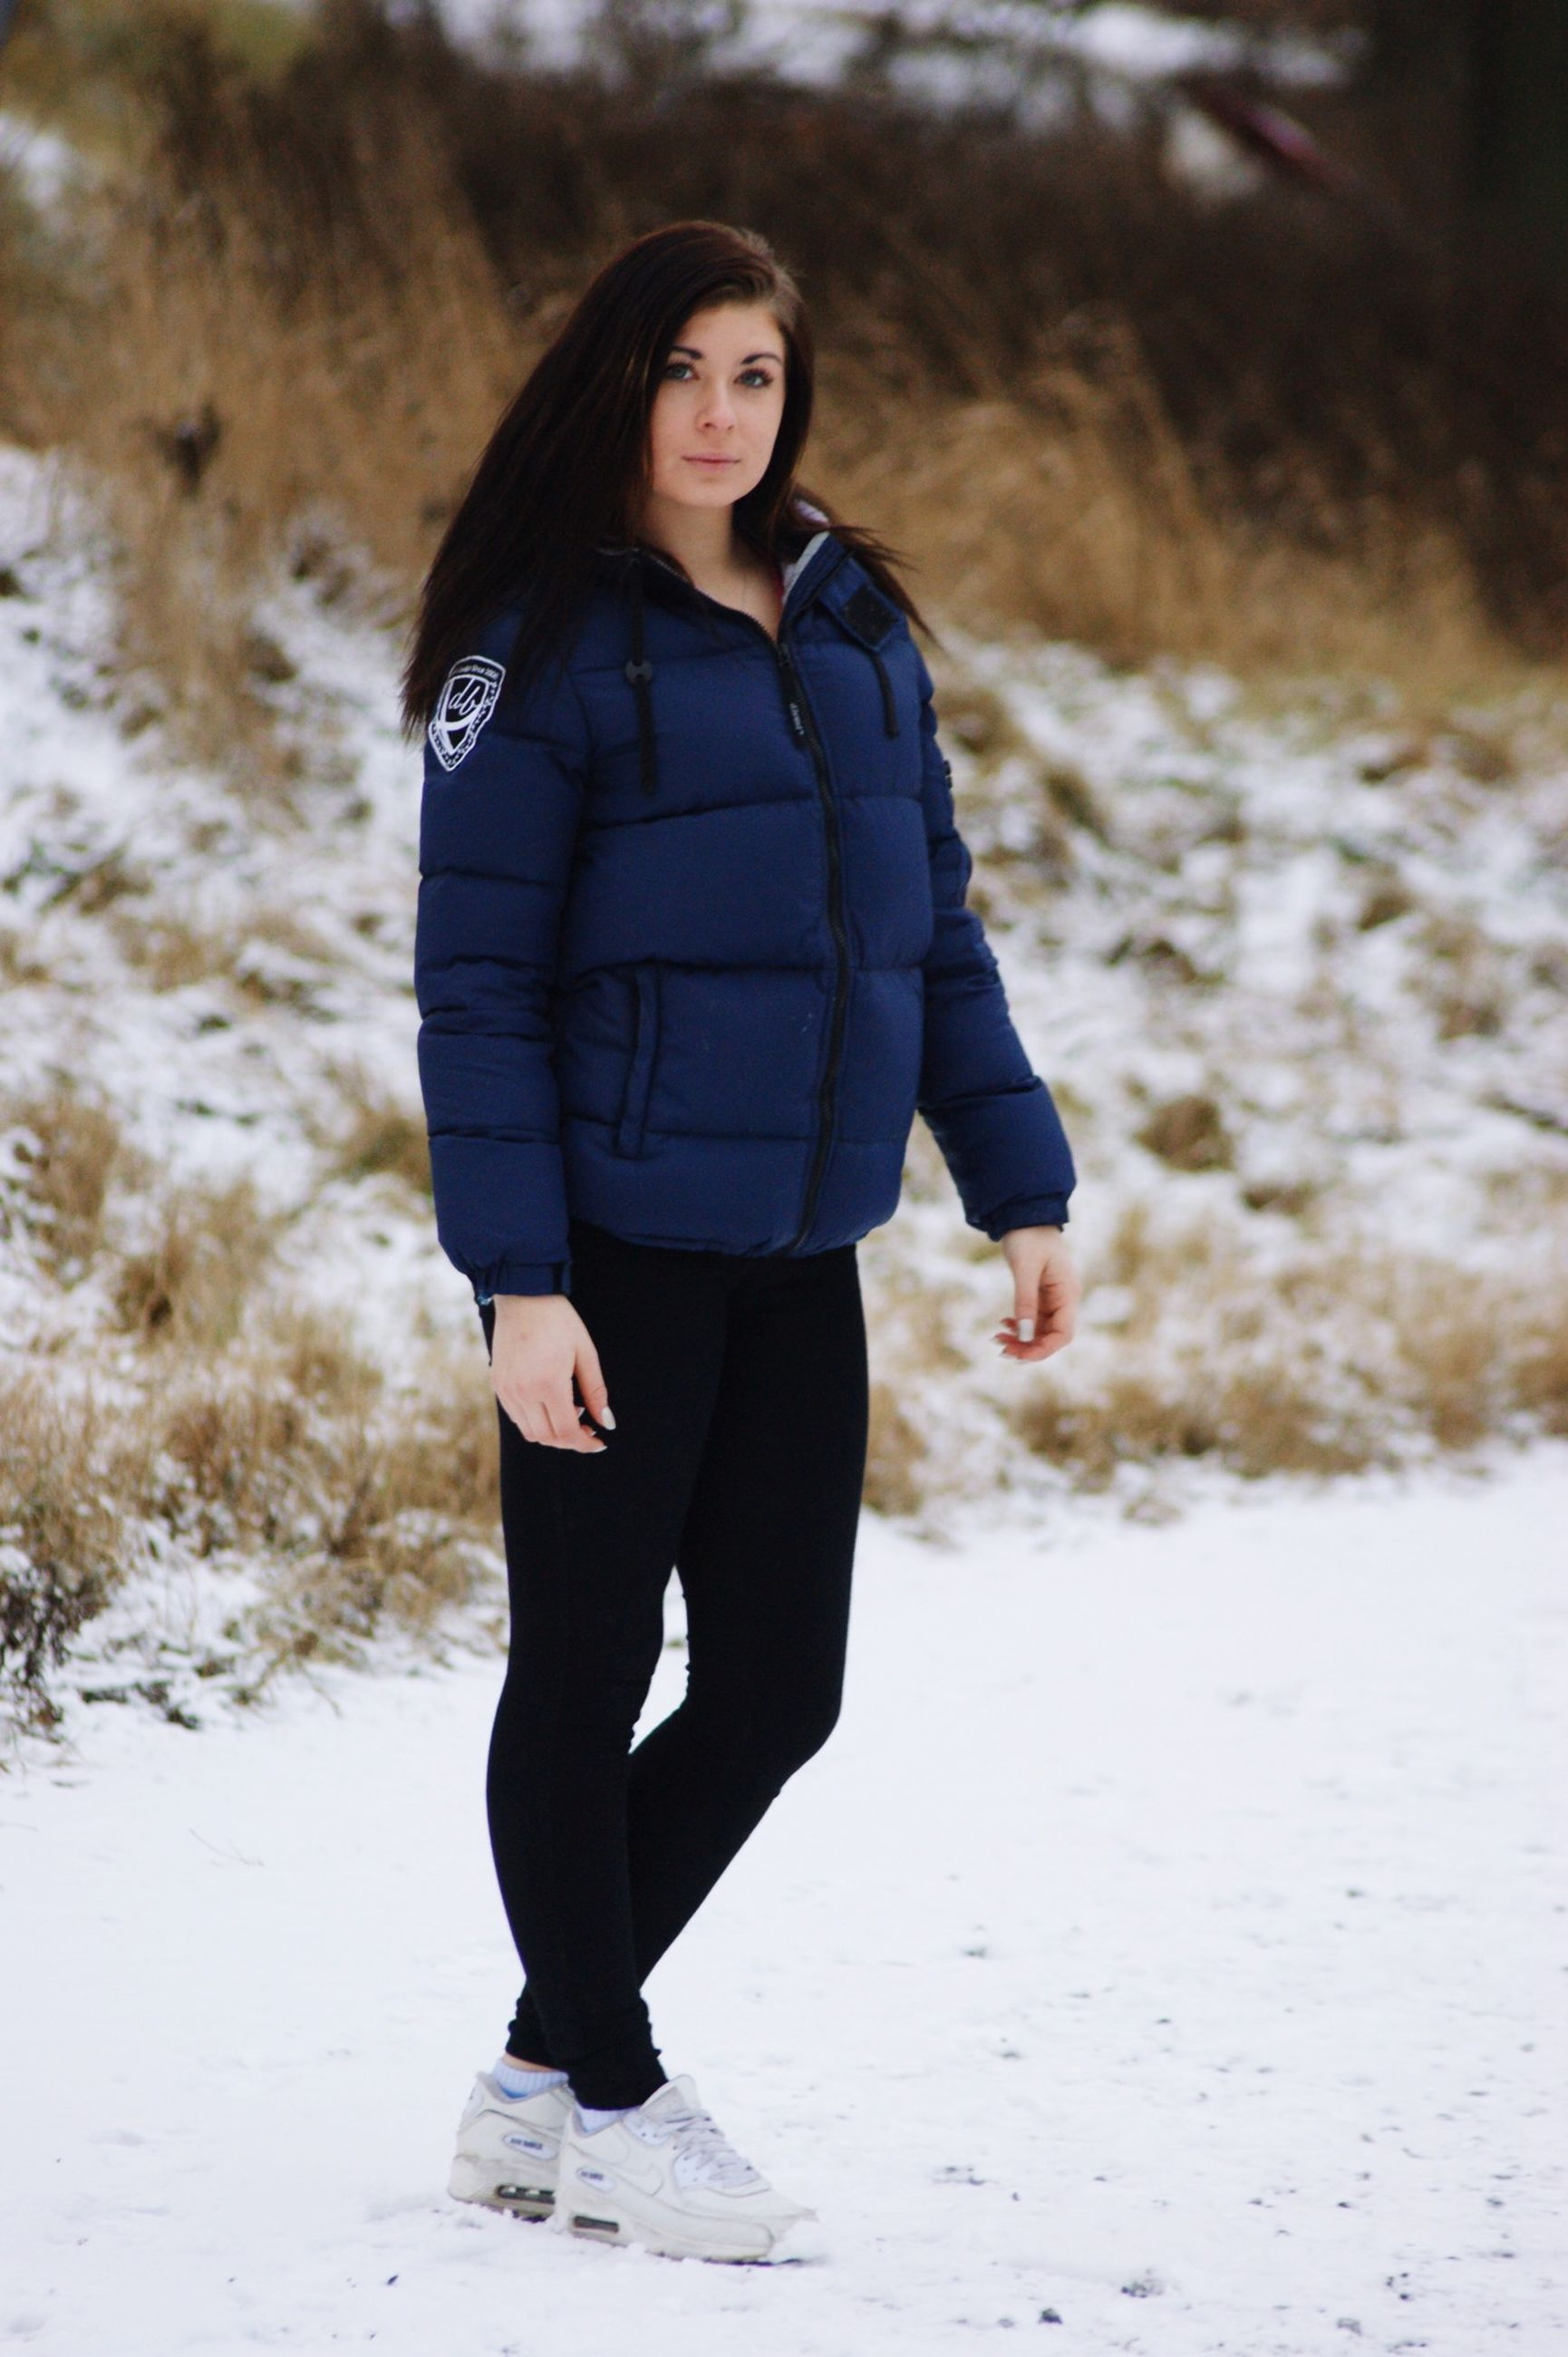 young adult, lifestyles, casual clothing, focus on foreground, standing, front view, looking at camera, leisure activity, full length, portrait, person, young women, walking, winter, warm clothing, snow, jacket, outdoors